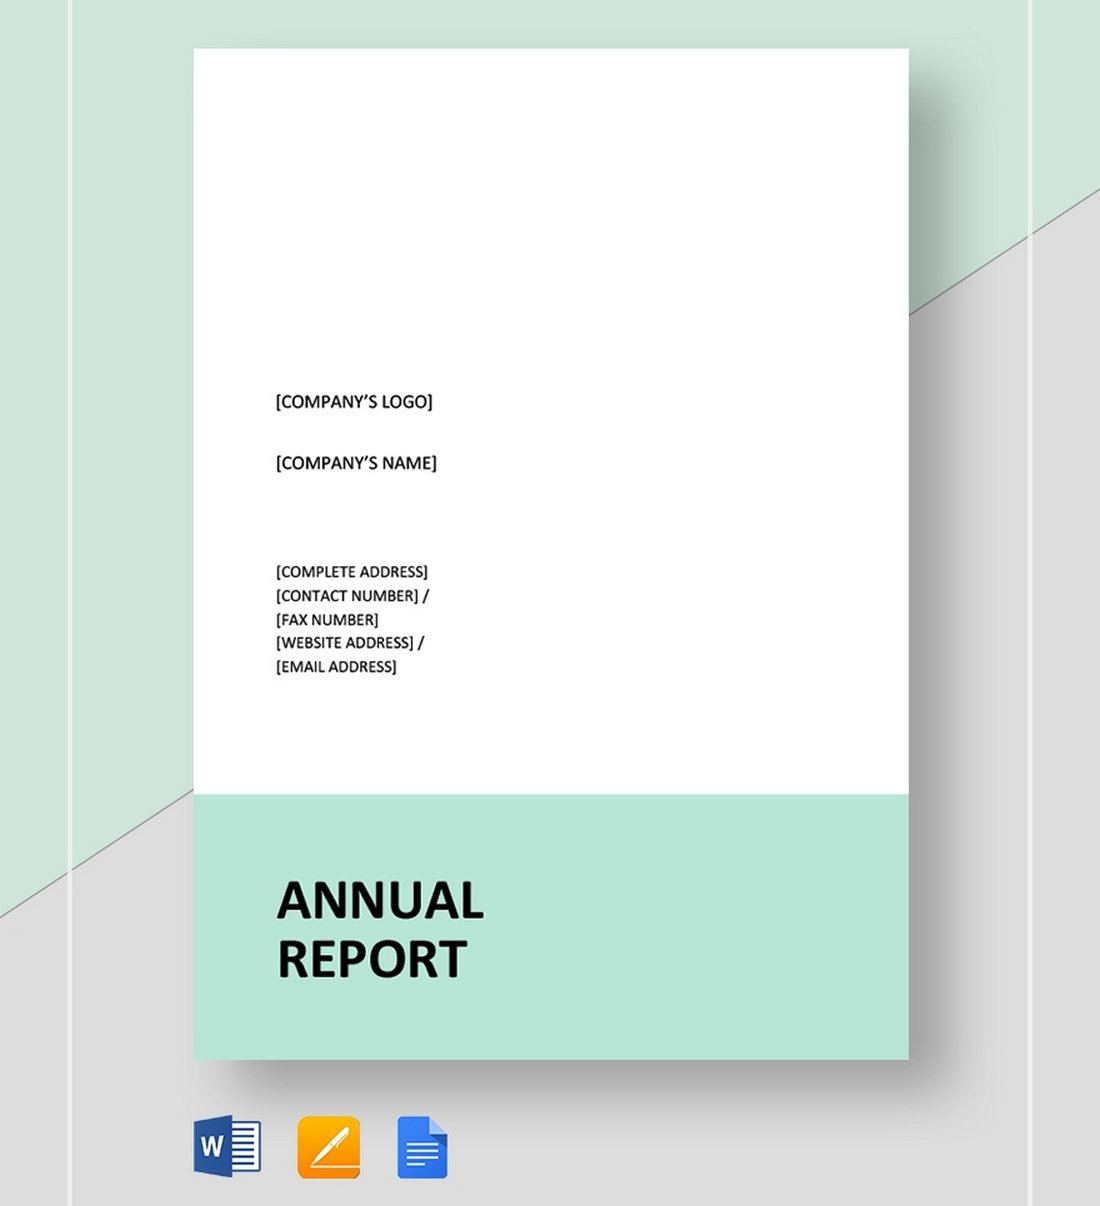 Free-Simple-Annual-Report-Template 50+ Annual Report Templates (Word & InDesign) 2021 design tips